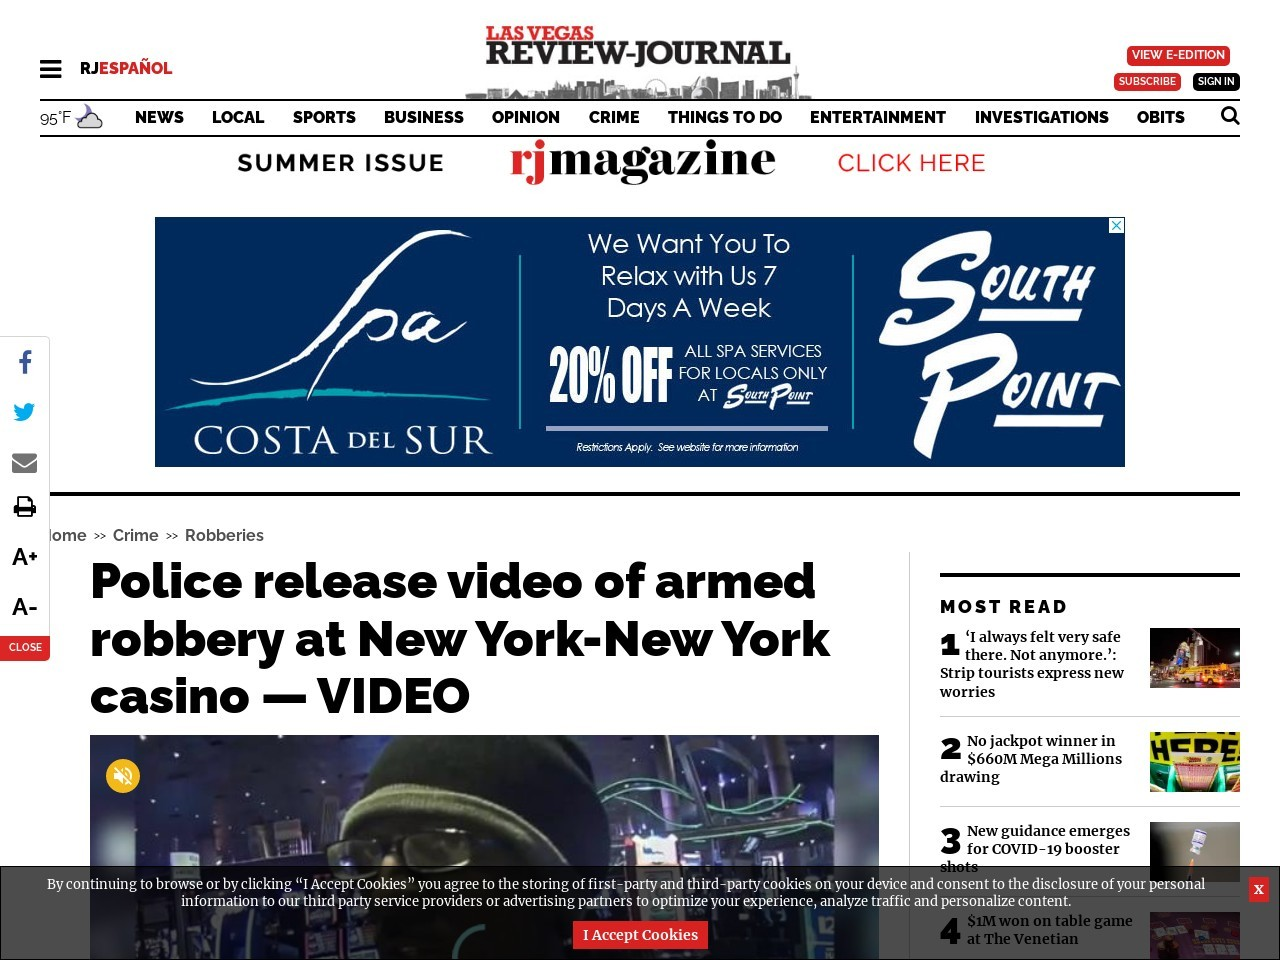 Police release video of armed robbery at New York-New York